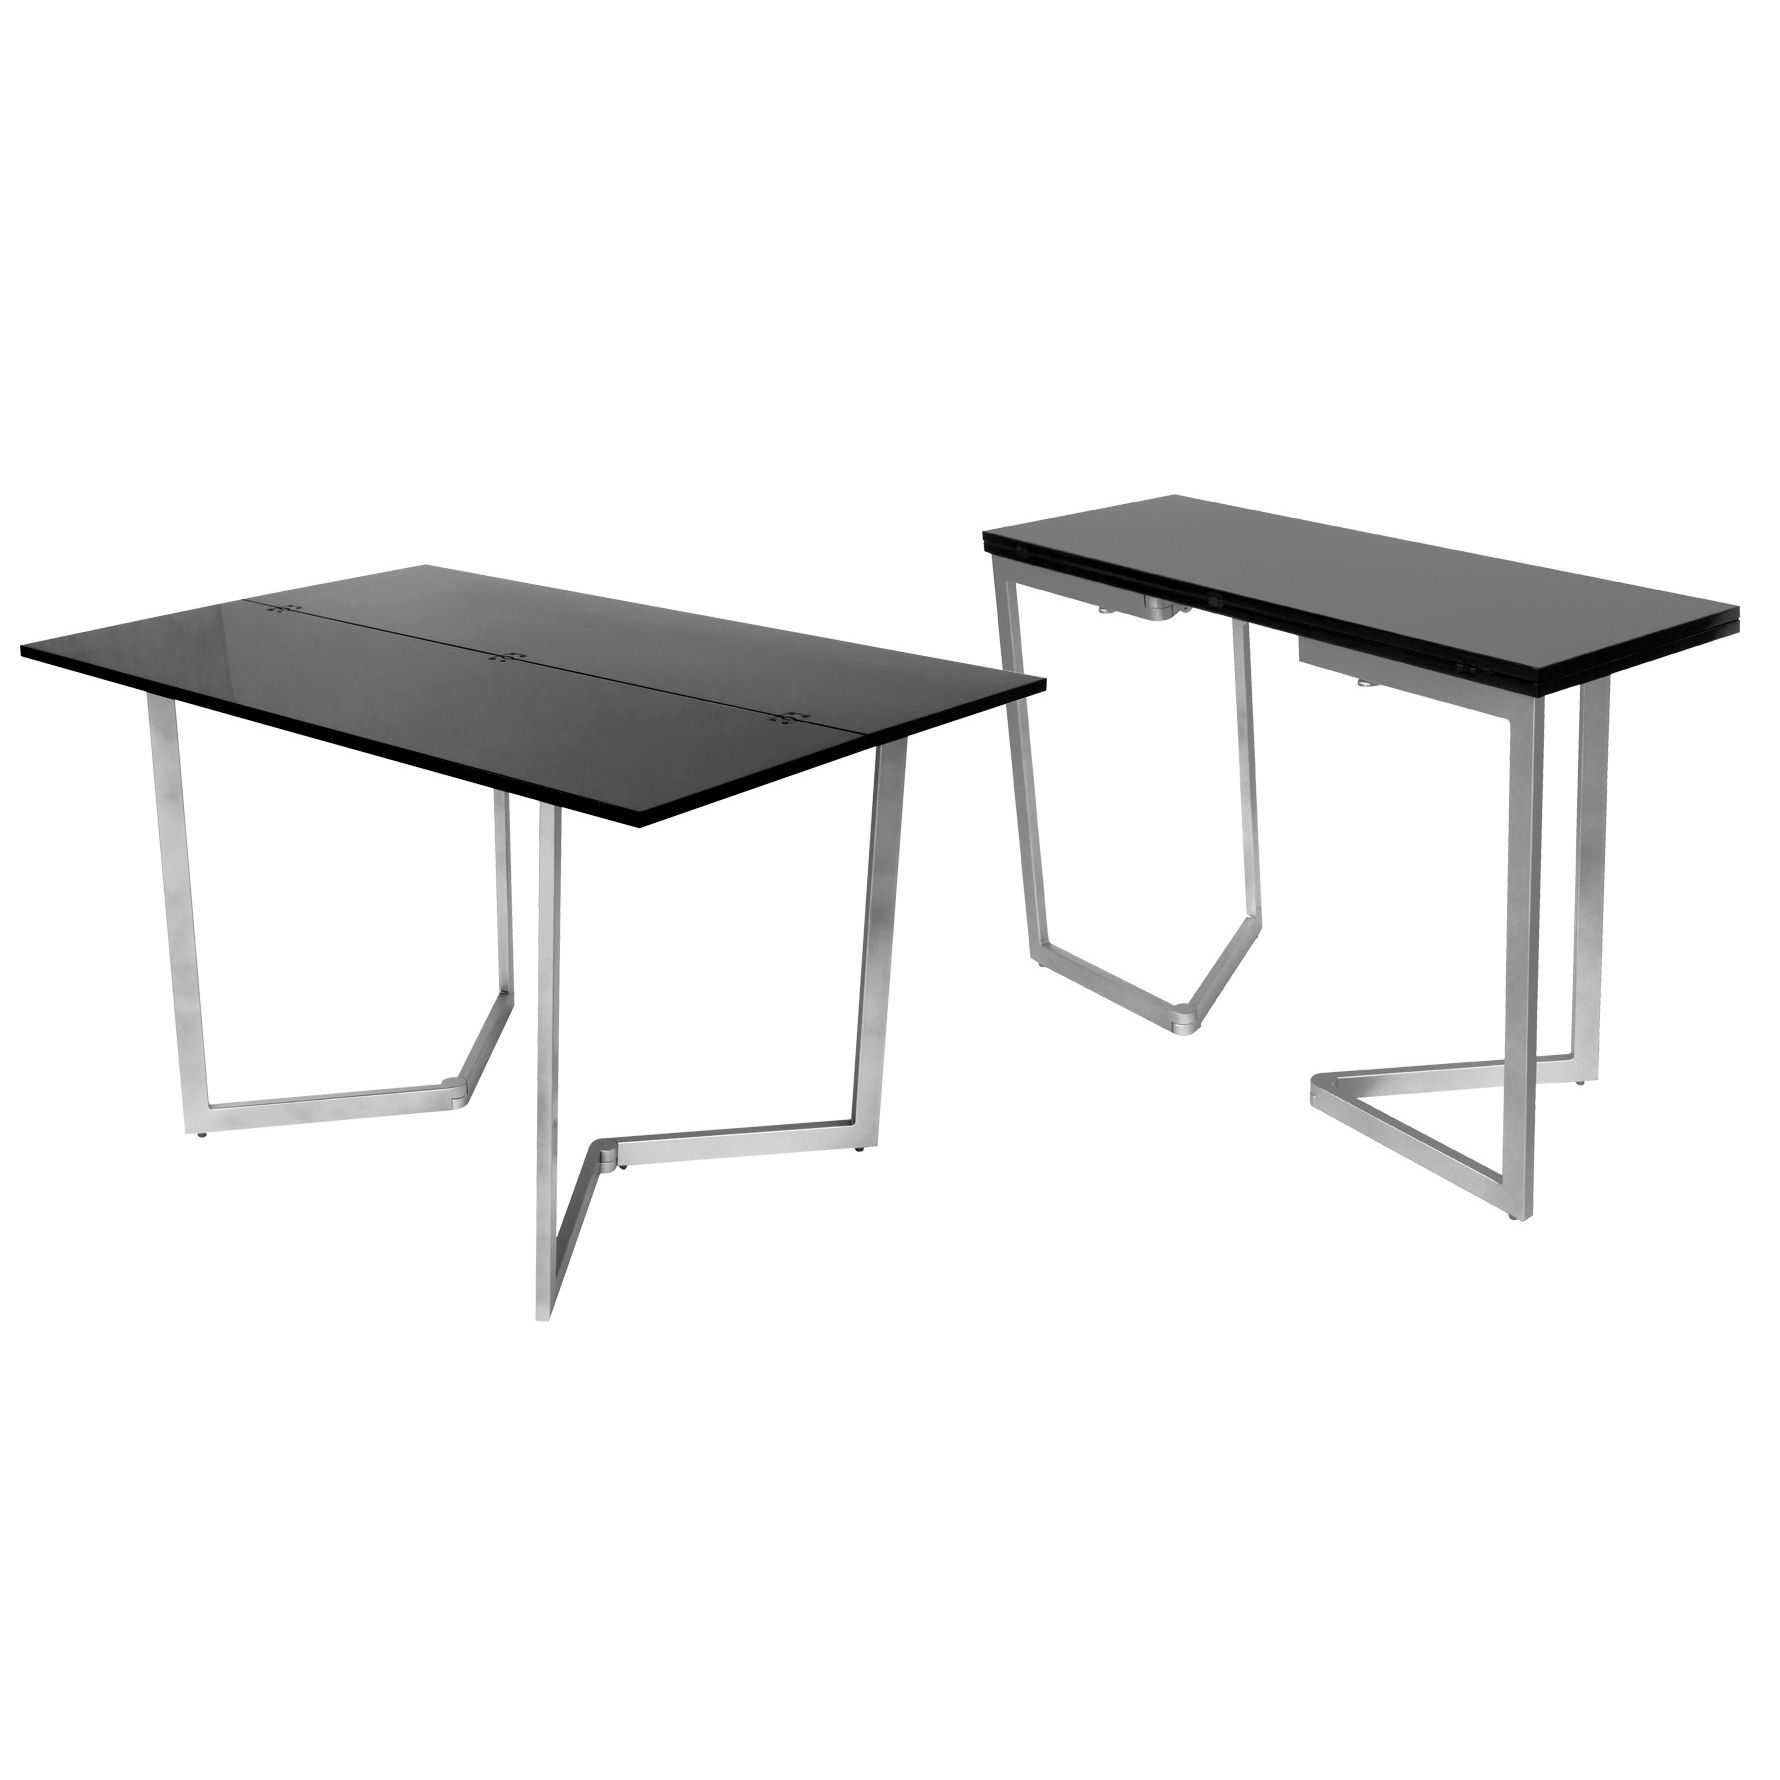 Deco in paris table console extensible noire laquee - Table extensible laquee ...